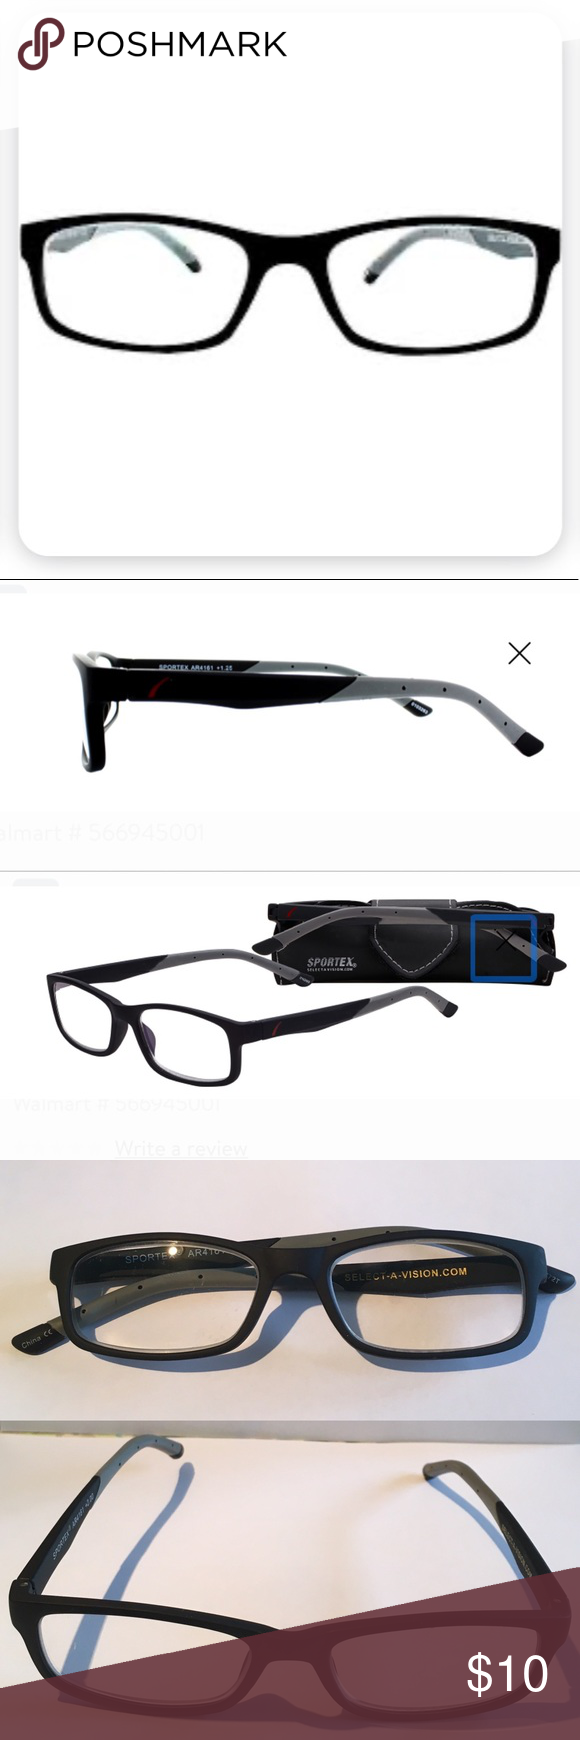 Sale Sportex Reading Glasses 2 00 In 2020 Reading Glasses Glasses Glasses Accessories They are not simply uniform rods 'off the peg'. pinterest